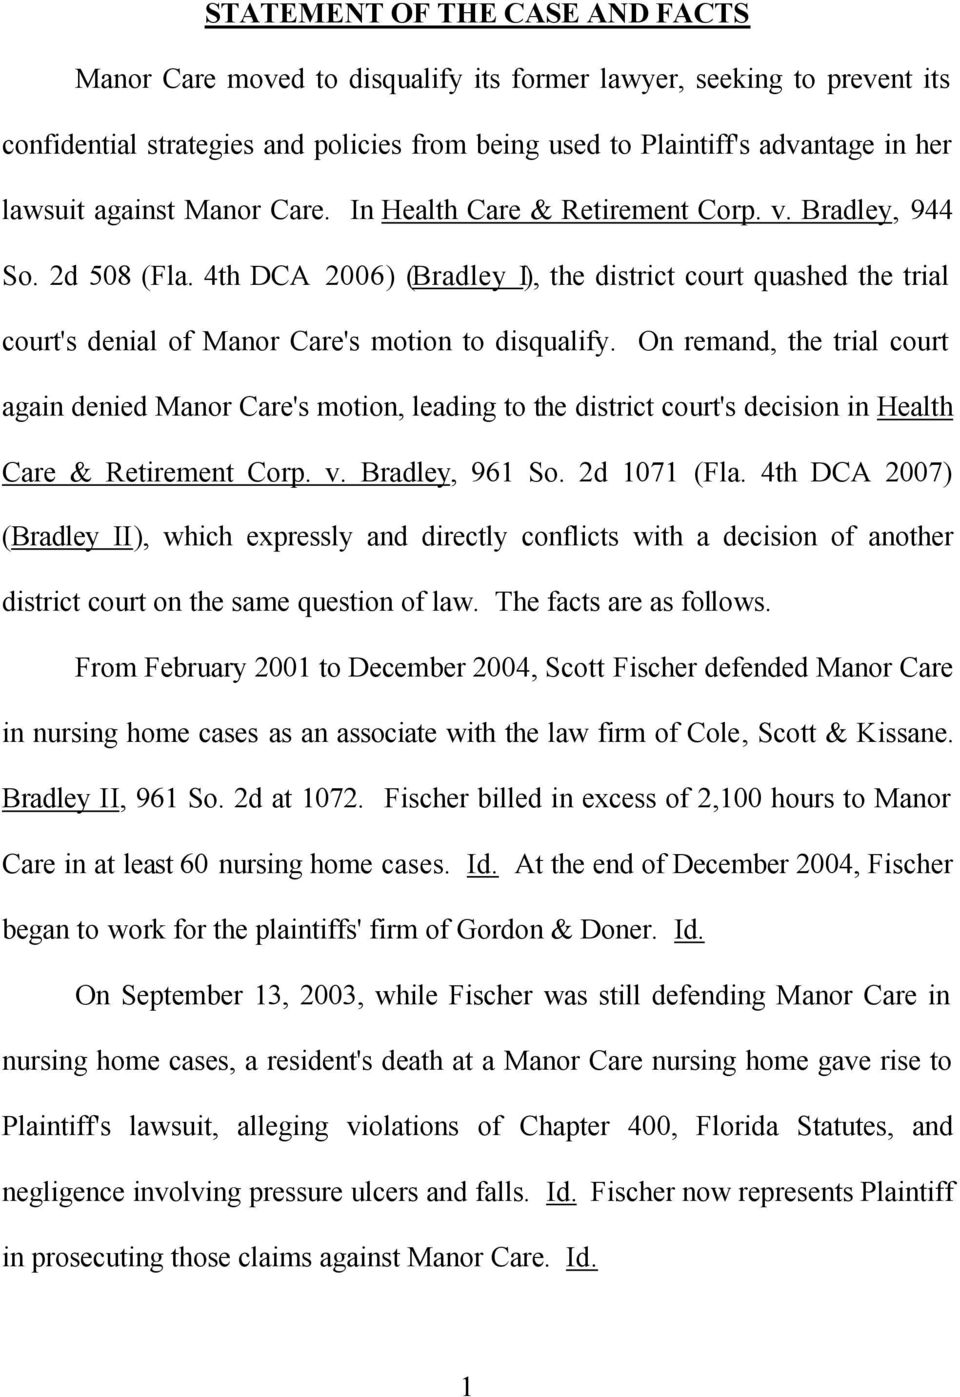 4th DCA 2006) (Bradley I), the district court quashed the trial court's denial of Manor Care's motion to disqualify.